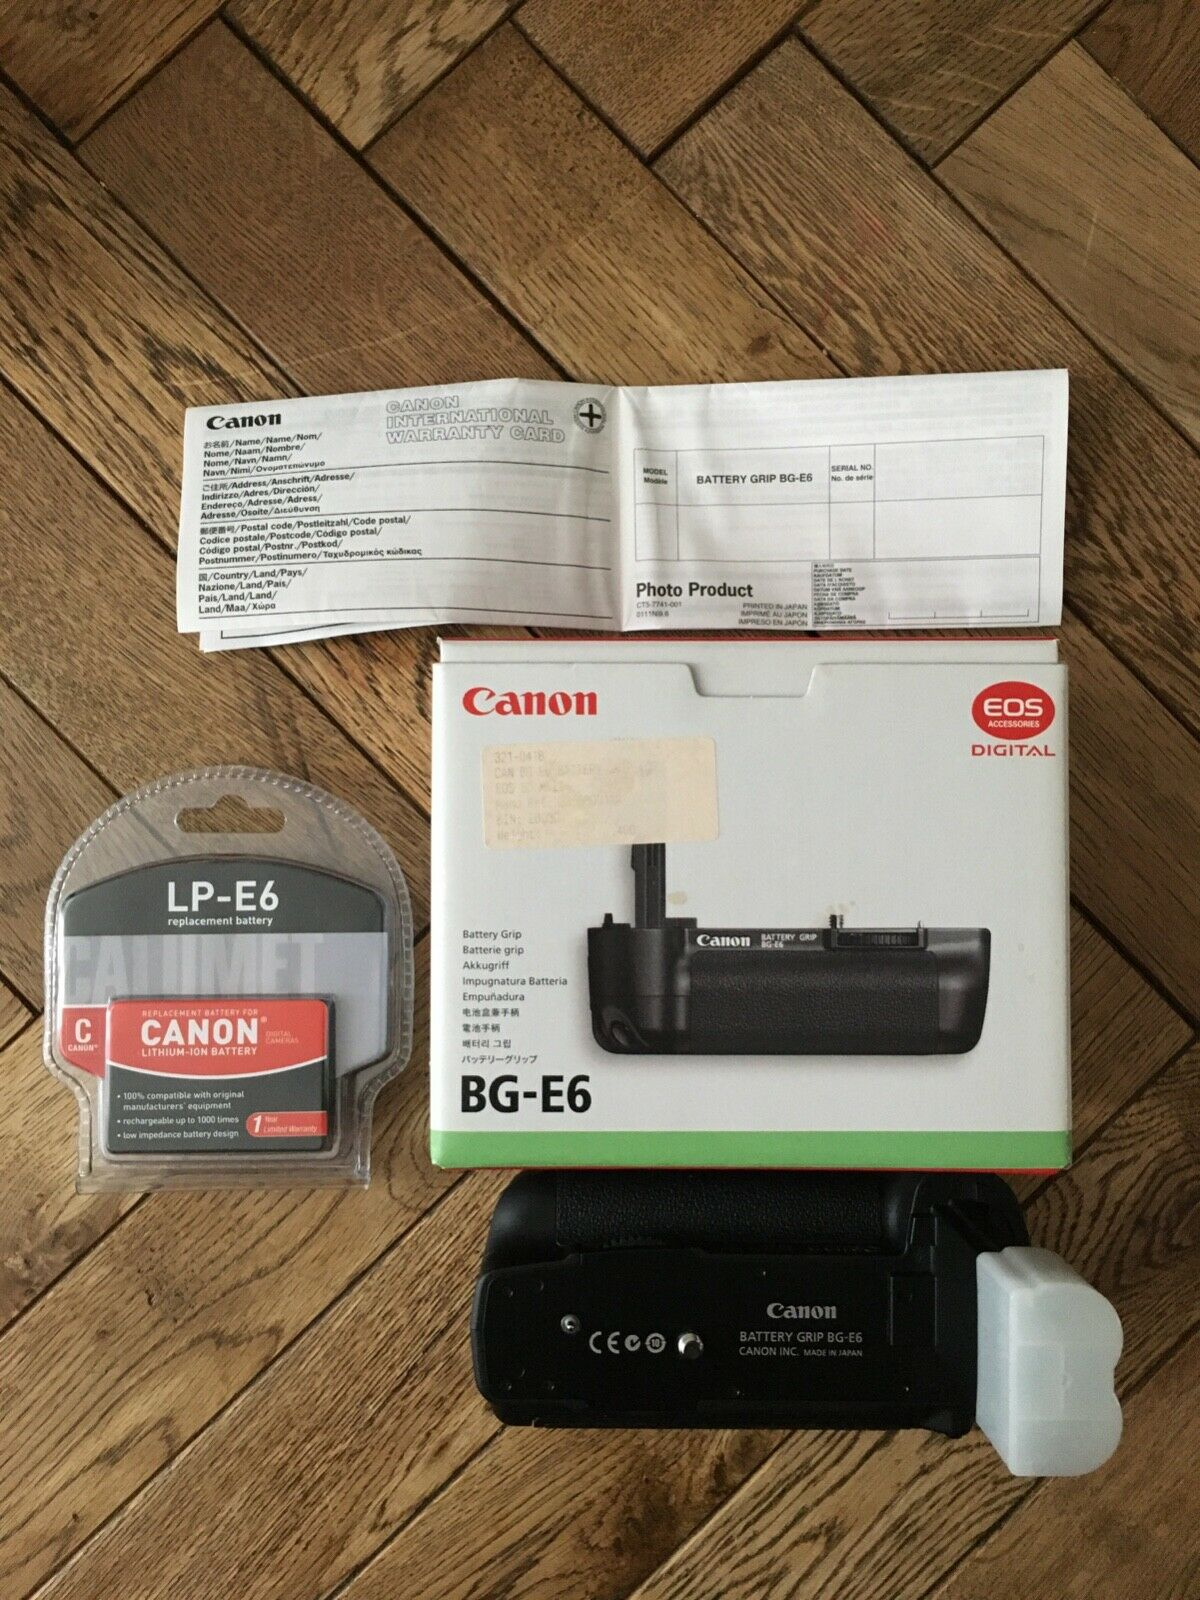 Canon BG-E6 Battery Grip with LP-E6 replacement battery